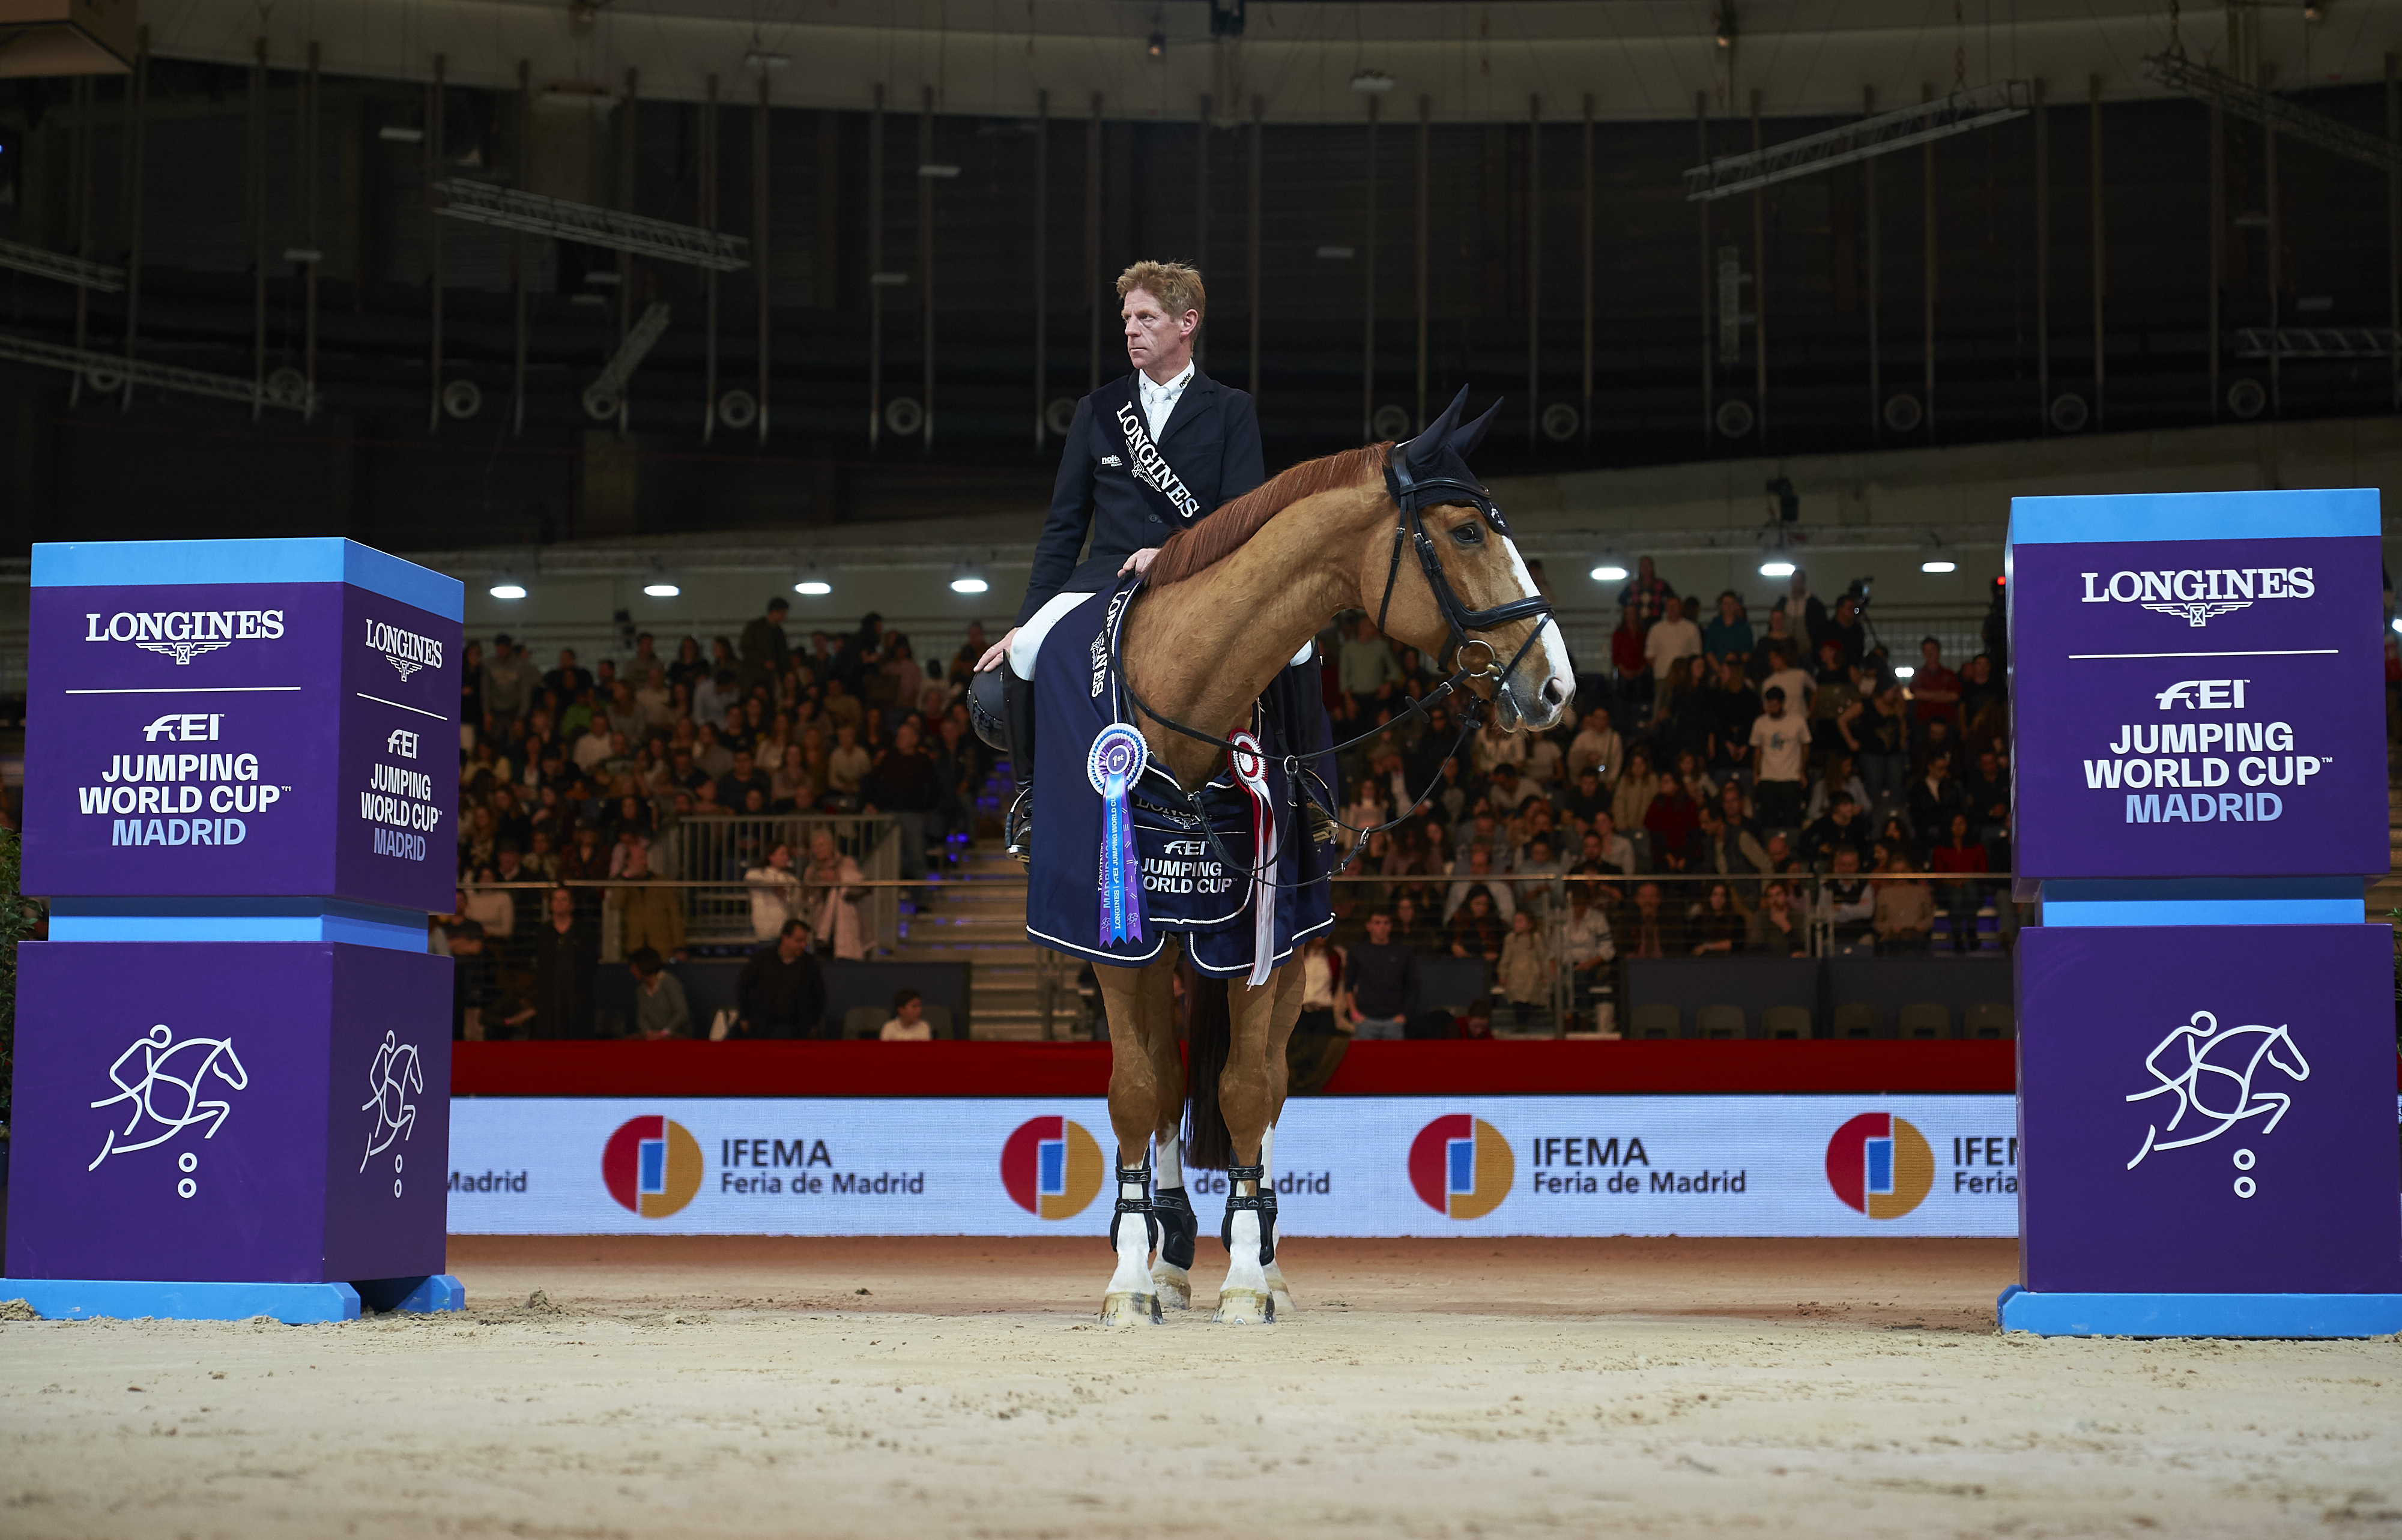 Unbeatable Marcus Ehning, in the Longines FEI World Cup Grand Prix of IFEMA Madrid